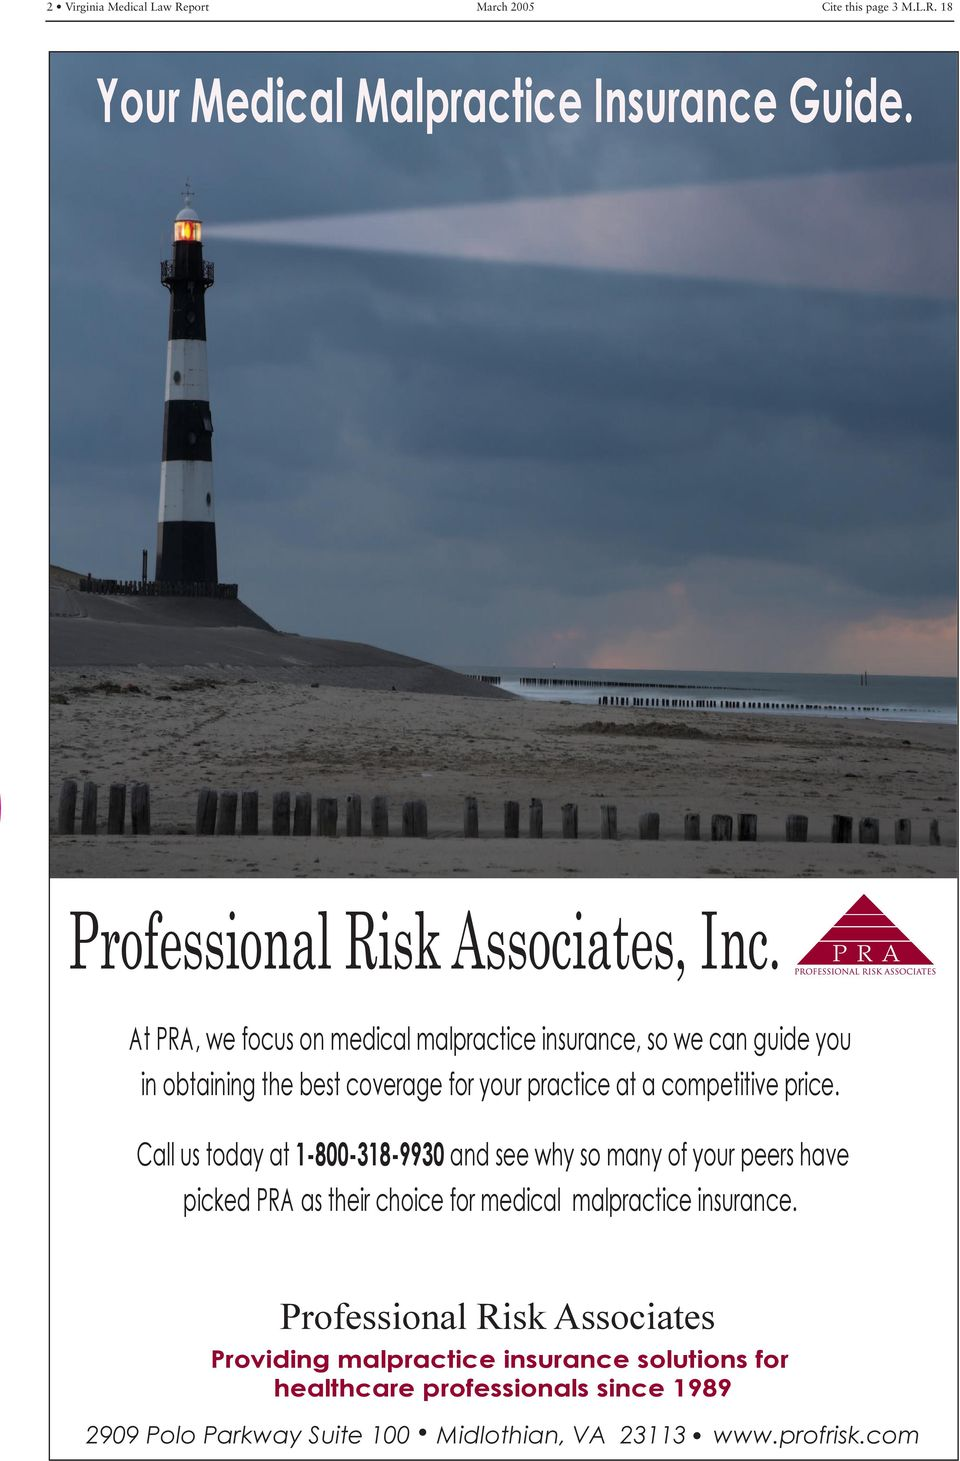 Call us today at 1-800-318-9930 and see why so many of your peers have picked PRA as their choice for medical malpractice insurance.